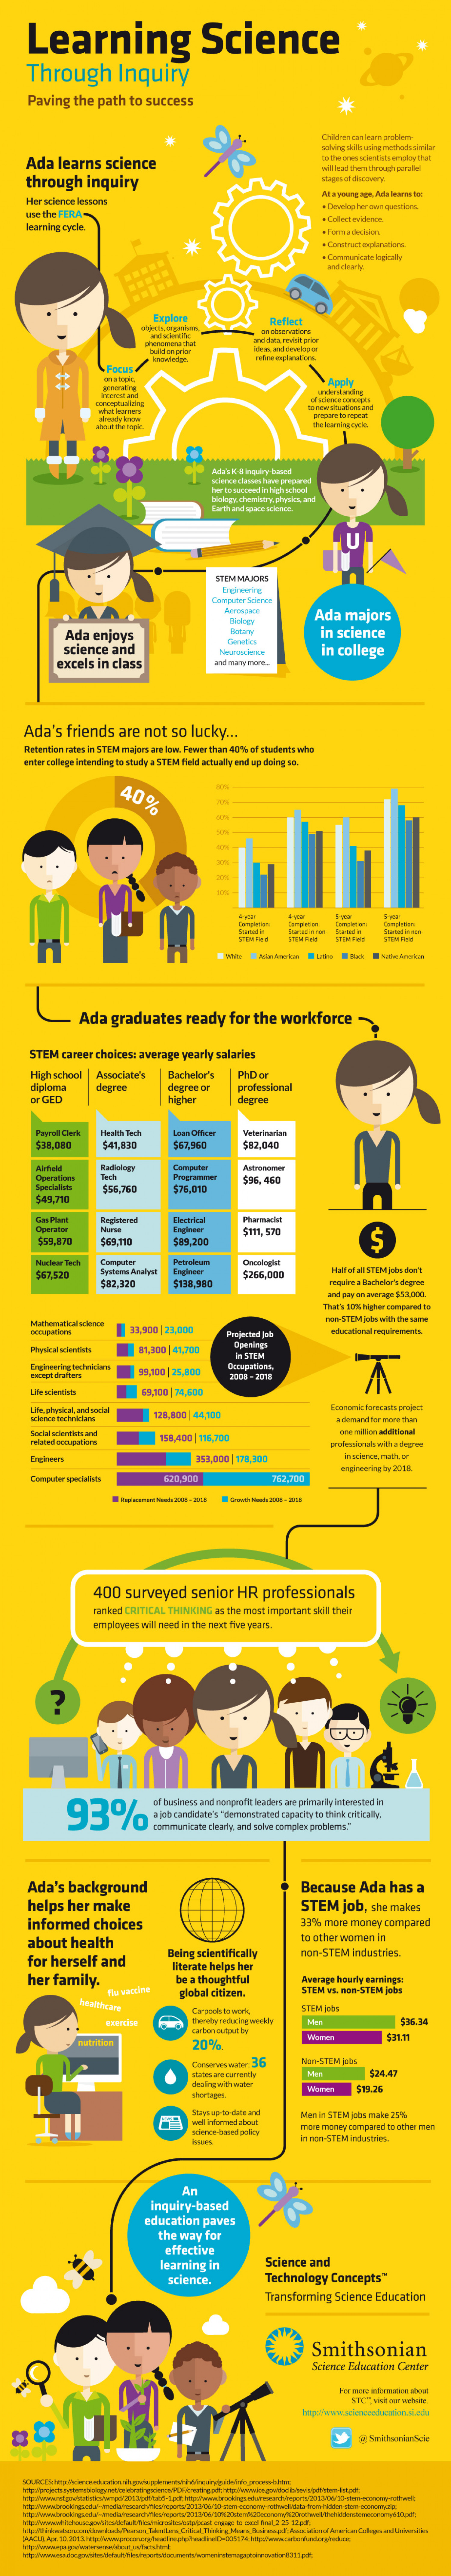 Learning Science Through Inquiry Infographic